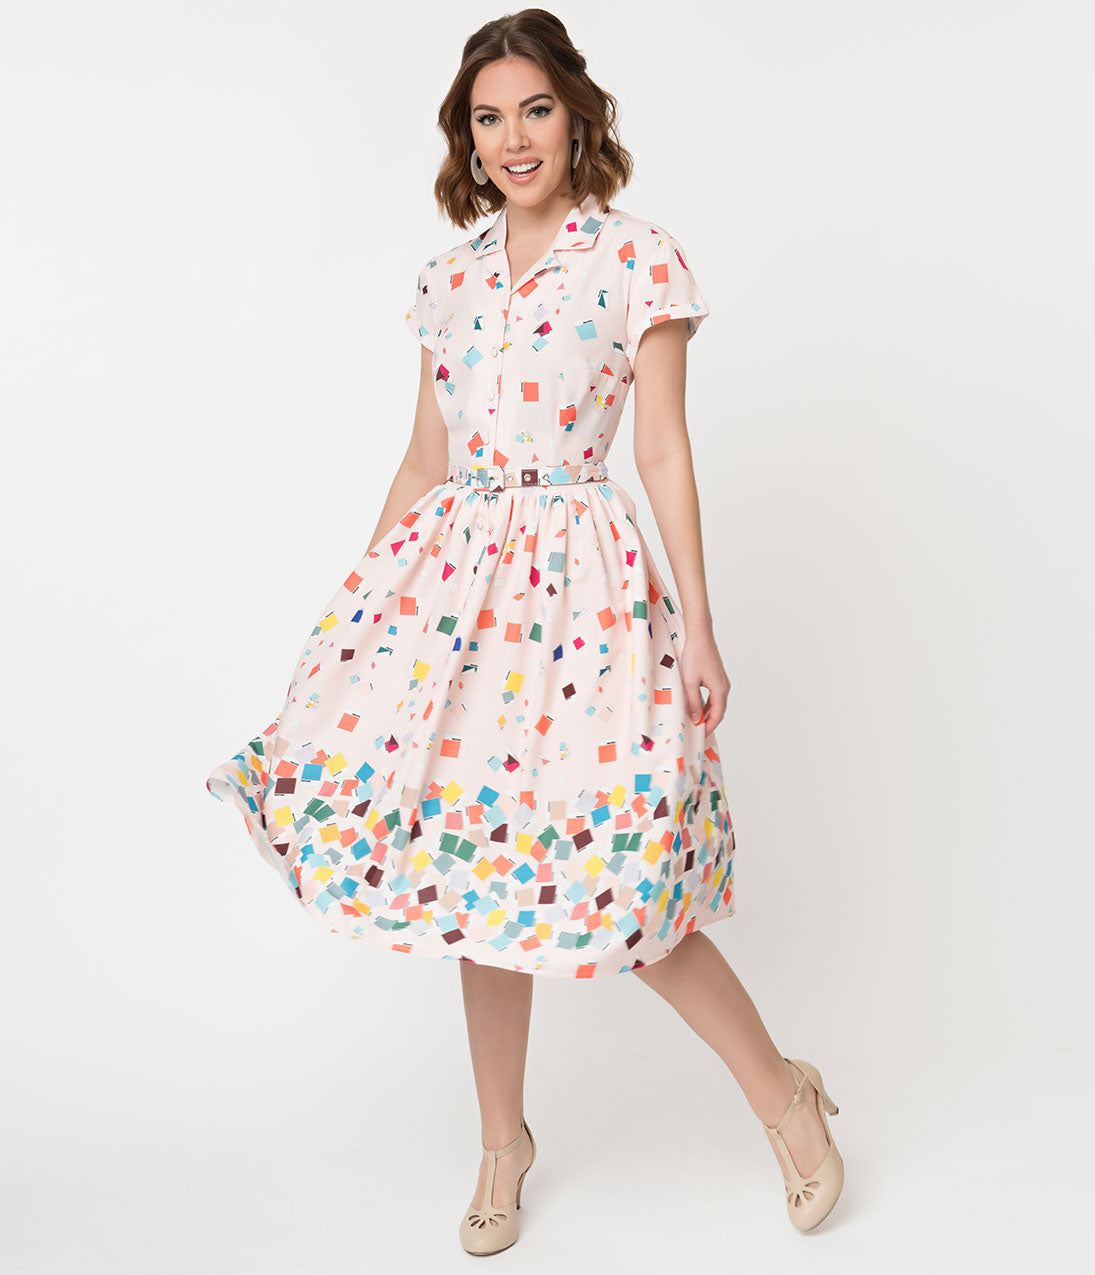 1950s Swing Dresses | 50s Swing Dress Unique Vintage  Pantone 1950S Style Color Chips Print Alexis Shirtdress $118.00 AT vintagedancer.com